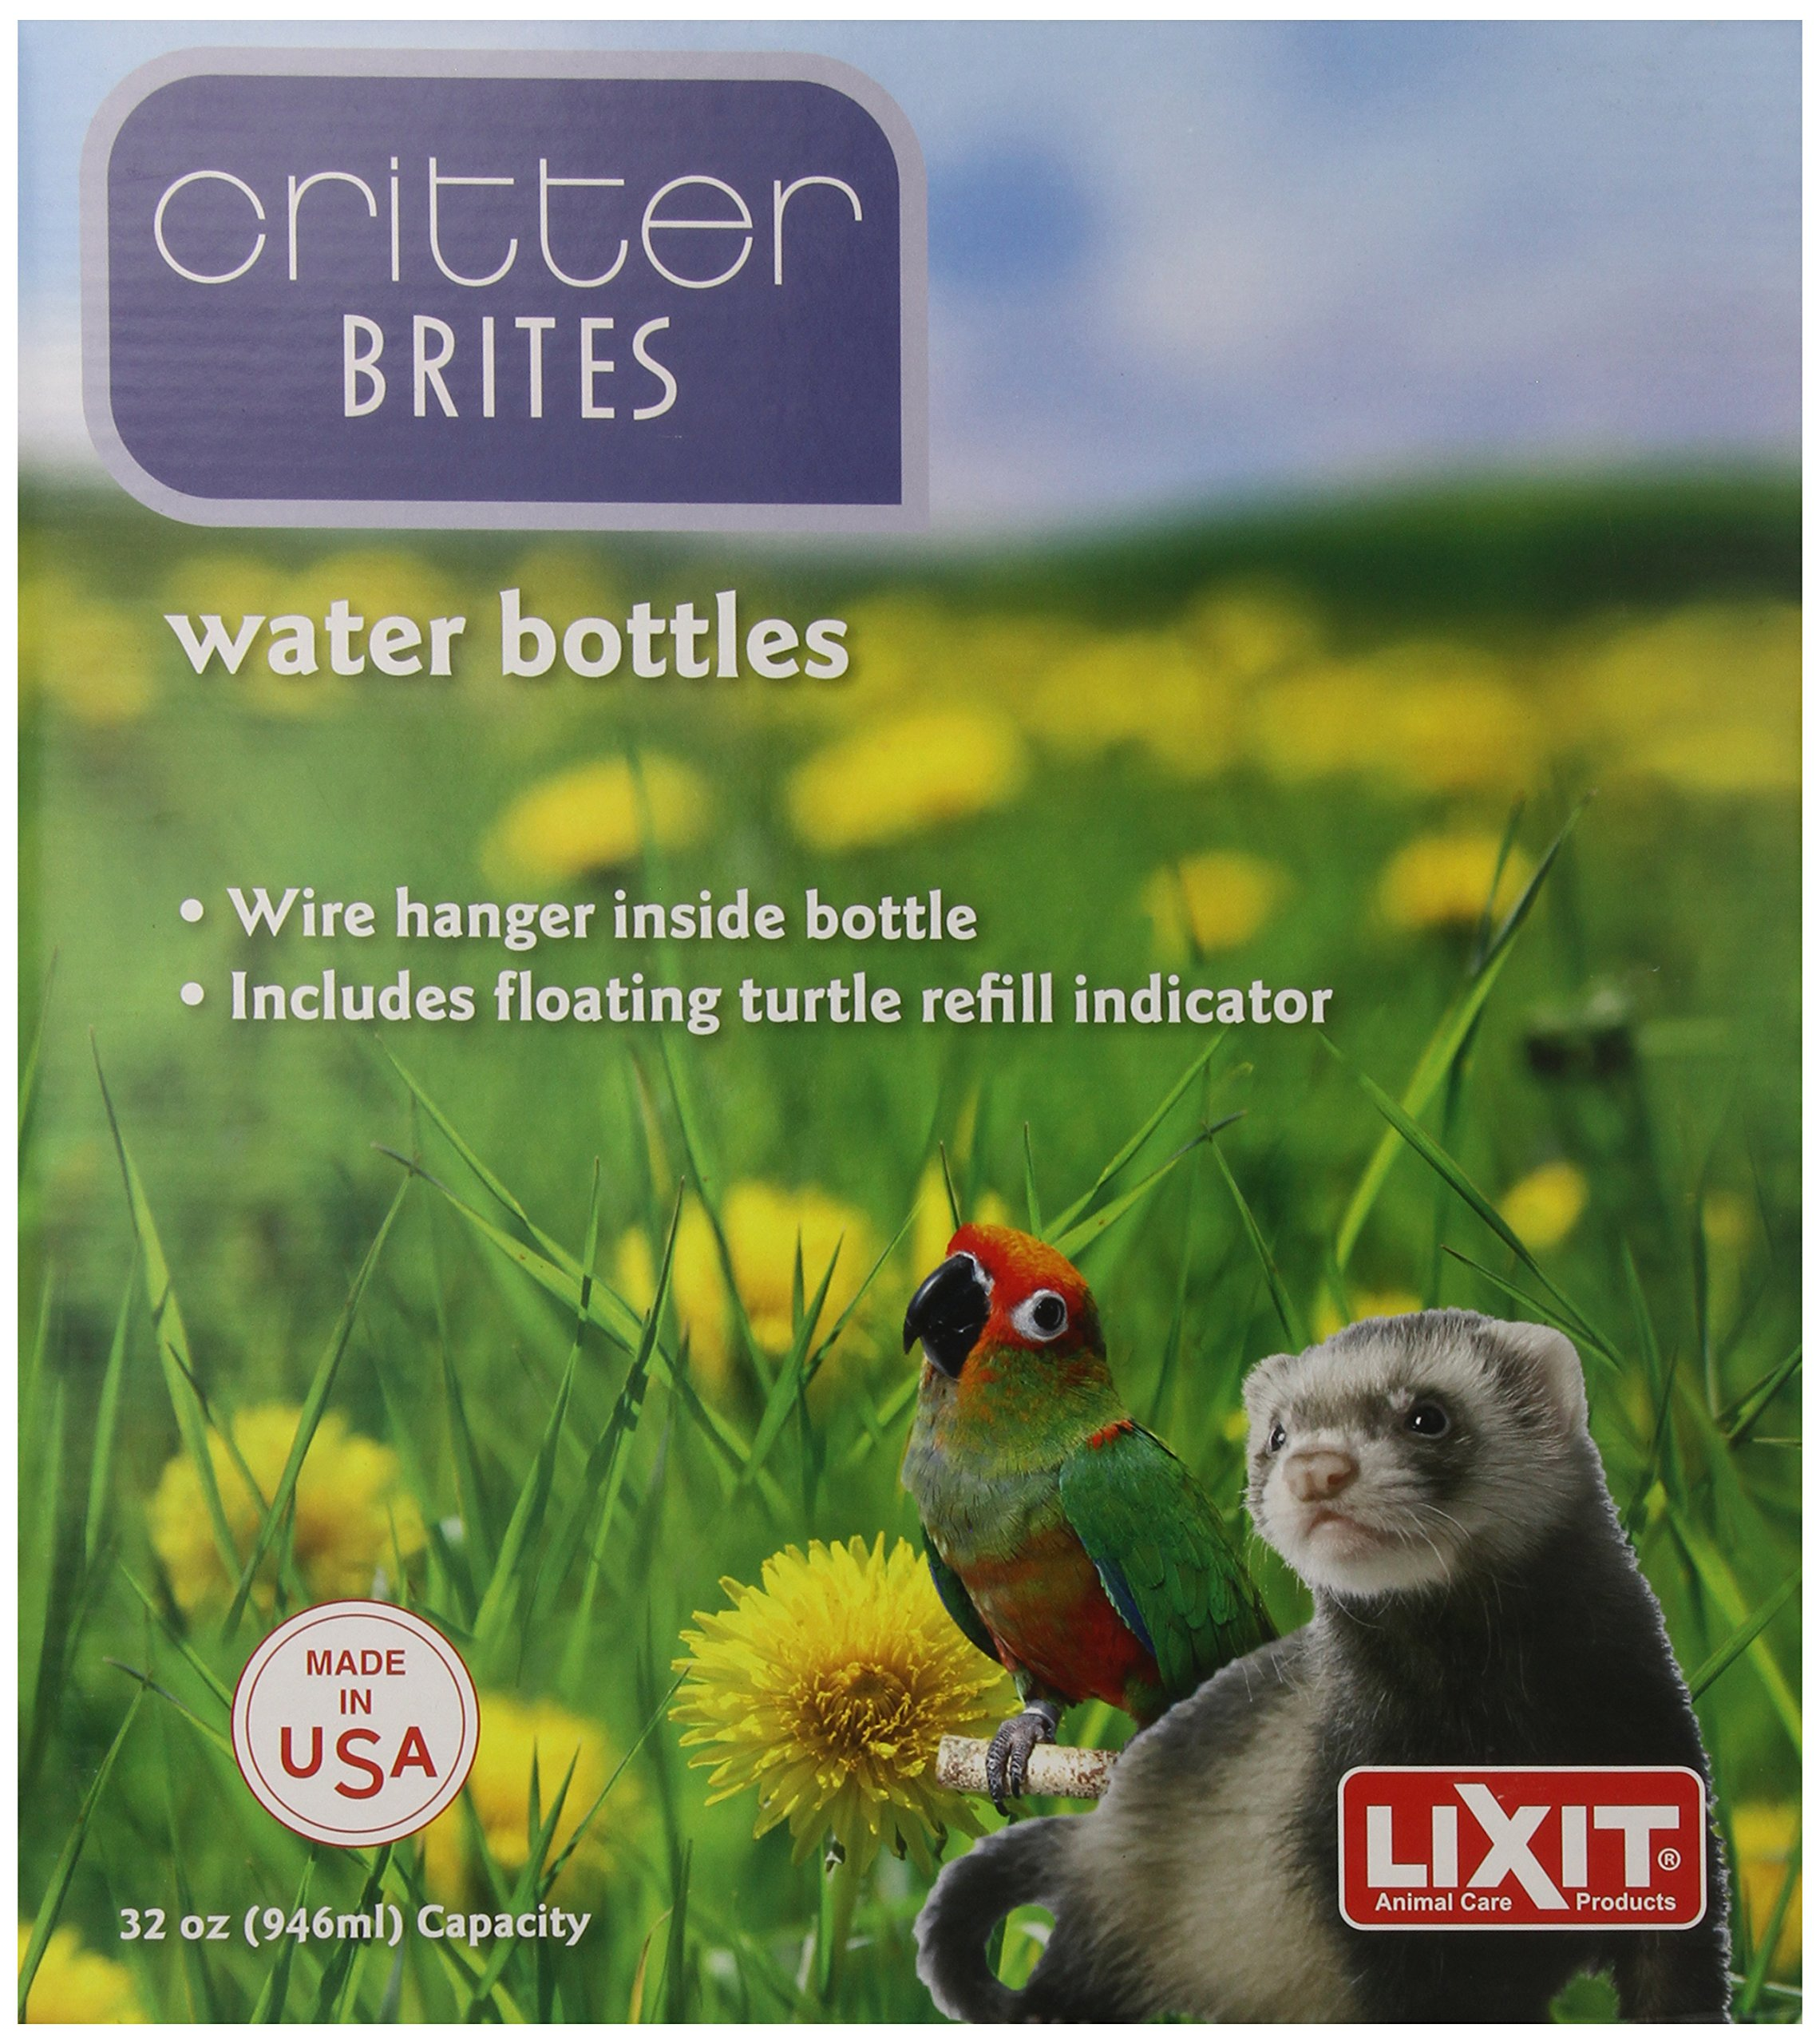 Lixit Corporation SLX0537 6-Pack Critter Brites Small Animal Water Bottles, 32-Ounce, Day Glow